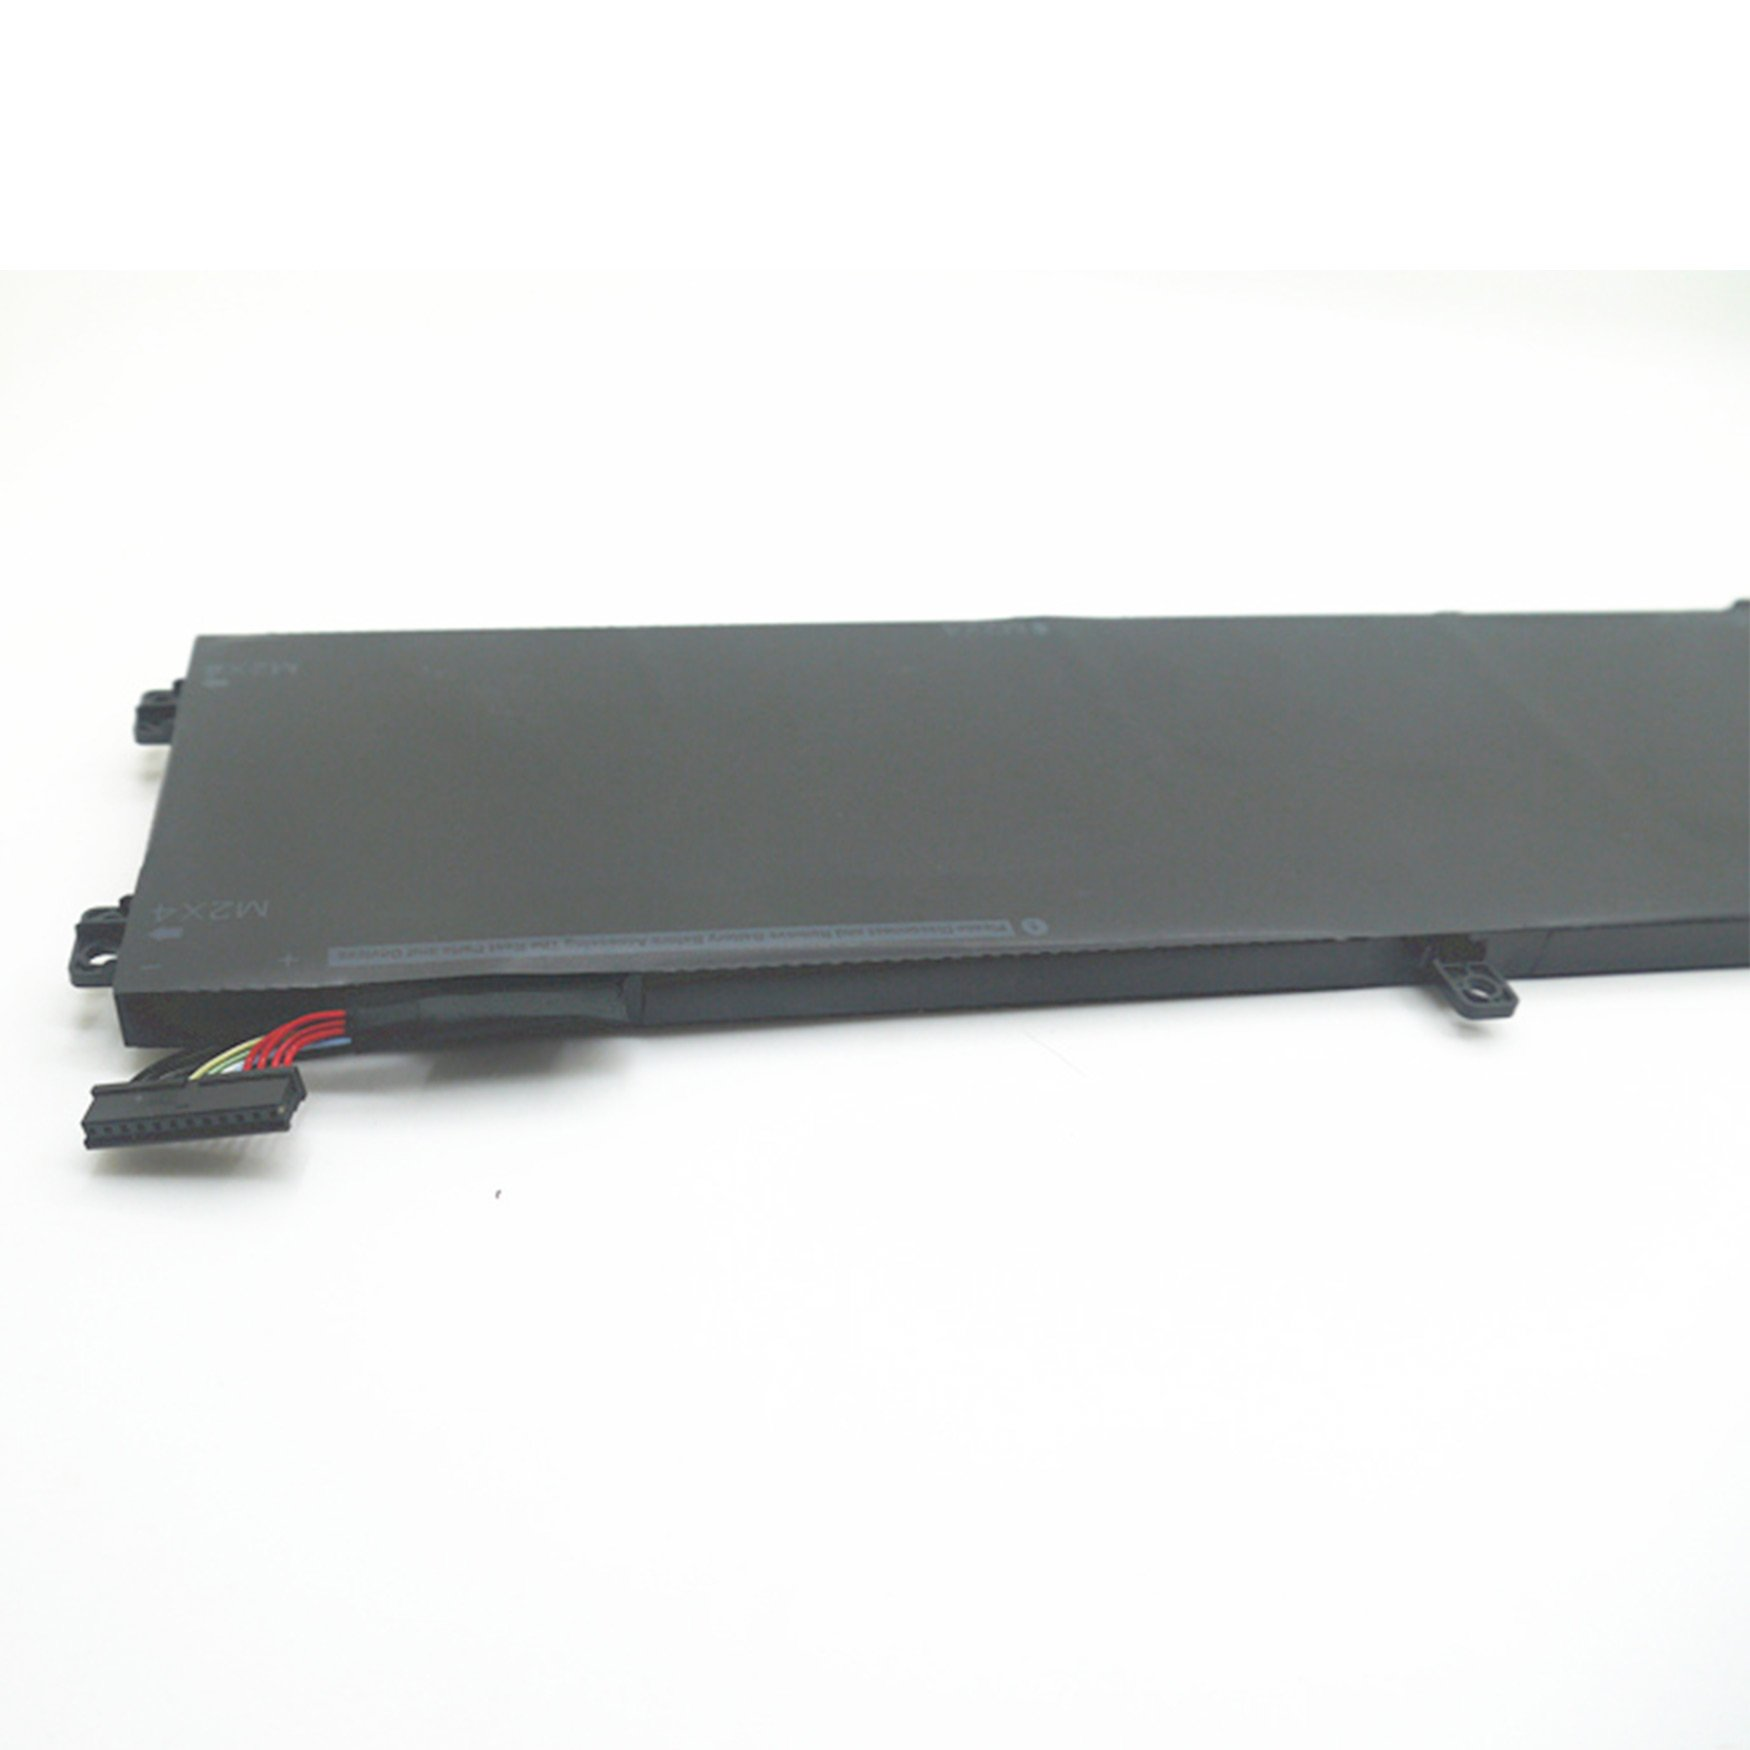 Dentsing 11.4V 97Wh 6GTPY battery for DELL XPS15 9550 gpm03 by Dentsing (Image #3)